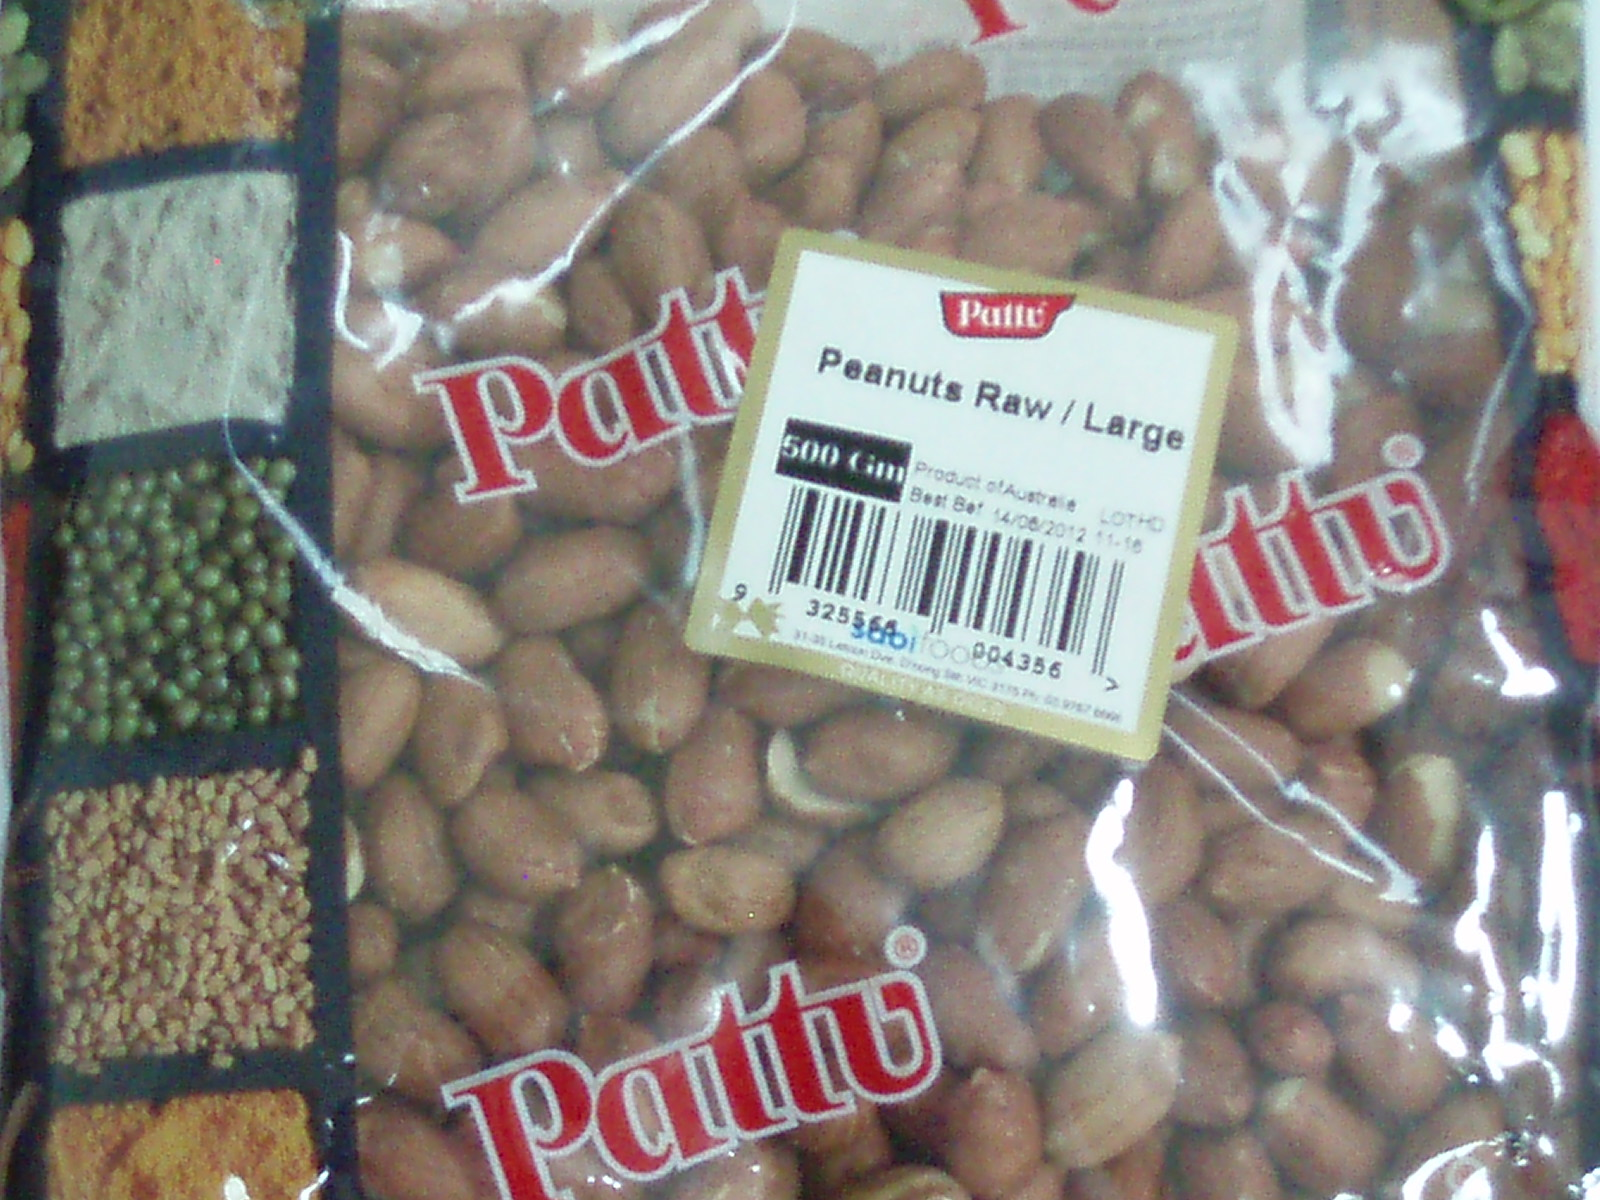 Peanut Raw Large-Pattu-250 gm